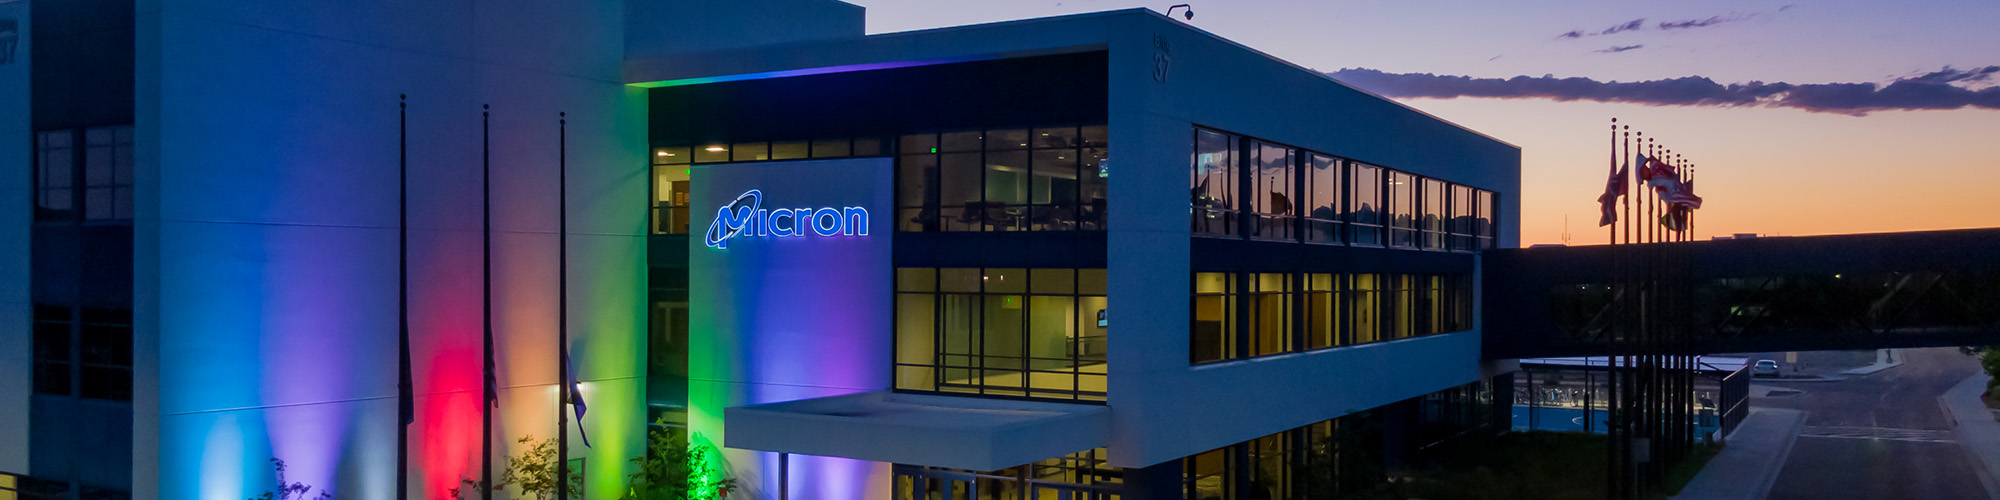 Micron's Boise campus lit up in celebration of Pride Month.